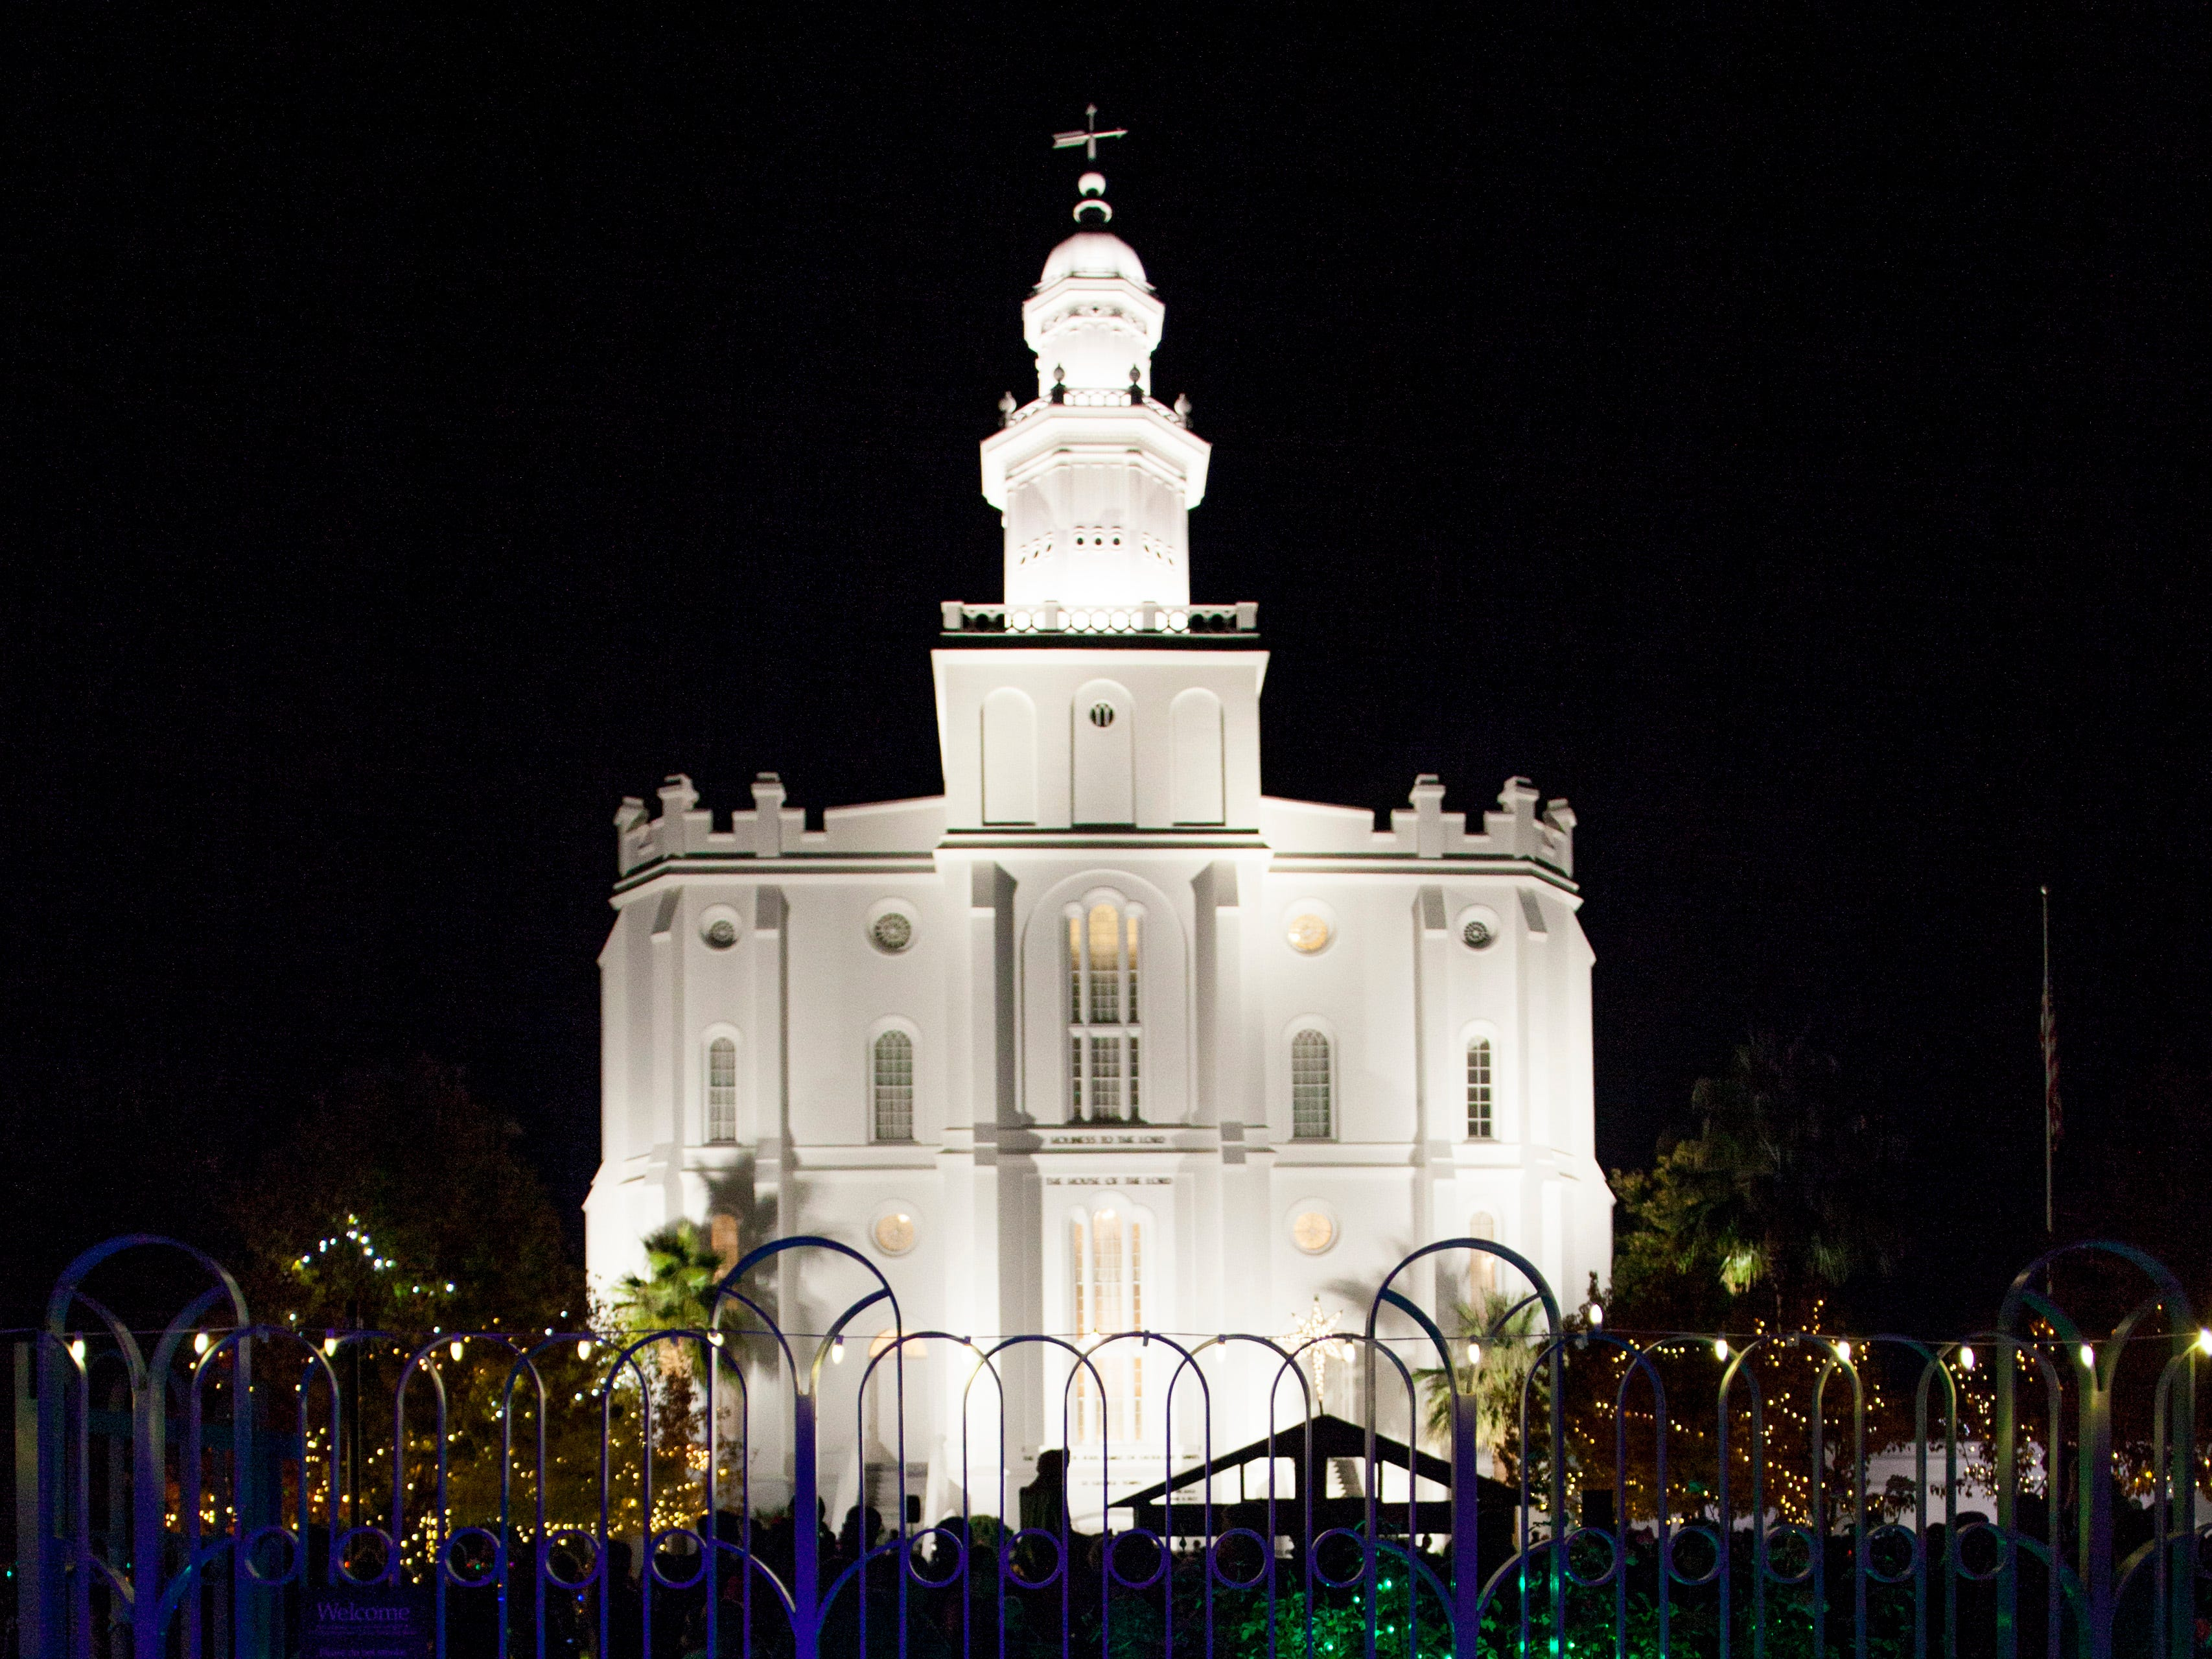 Washington County residents gather at the St. George LDS temple for the annual lighting ceremony Friday, Nov. 23, 2018.